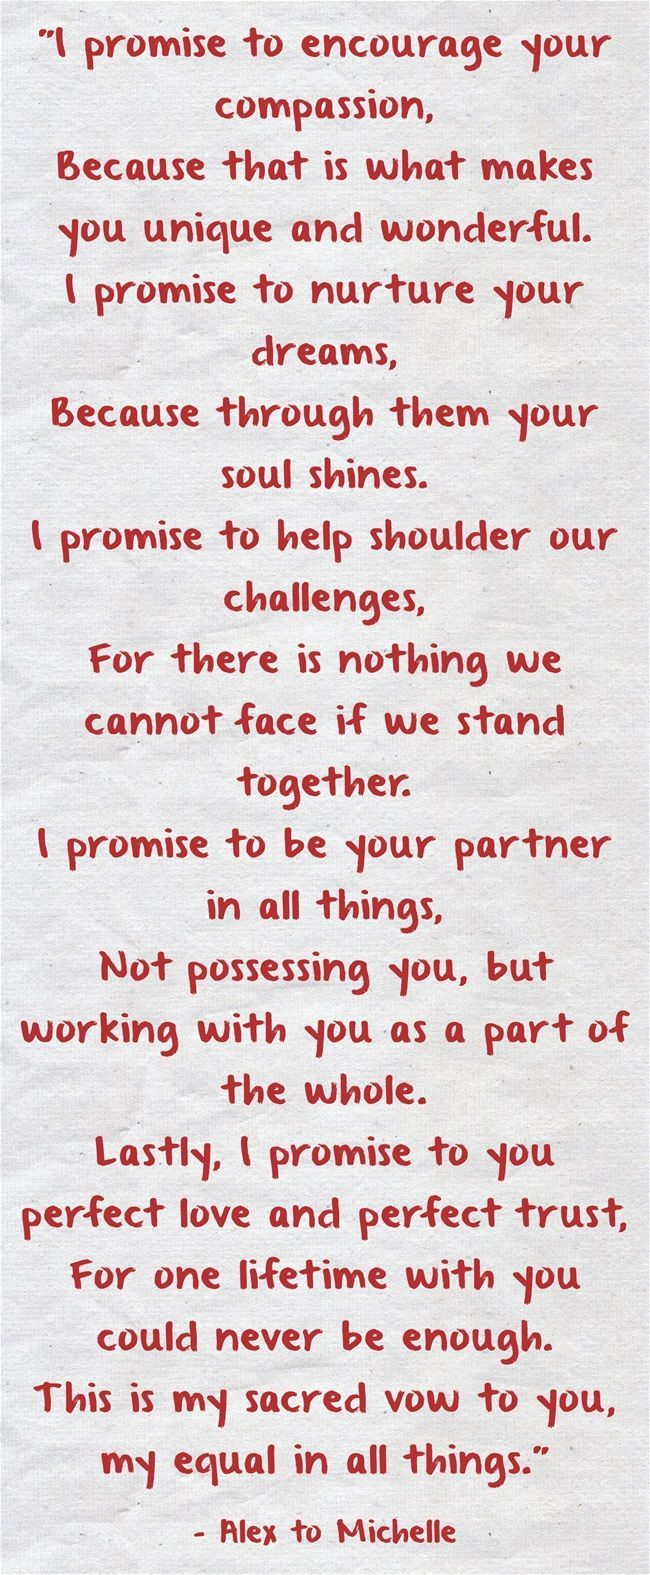 Wedding Quotes Vows 25 Heart Melting Real Couple Vow Ideas To Make